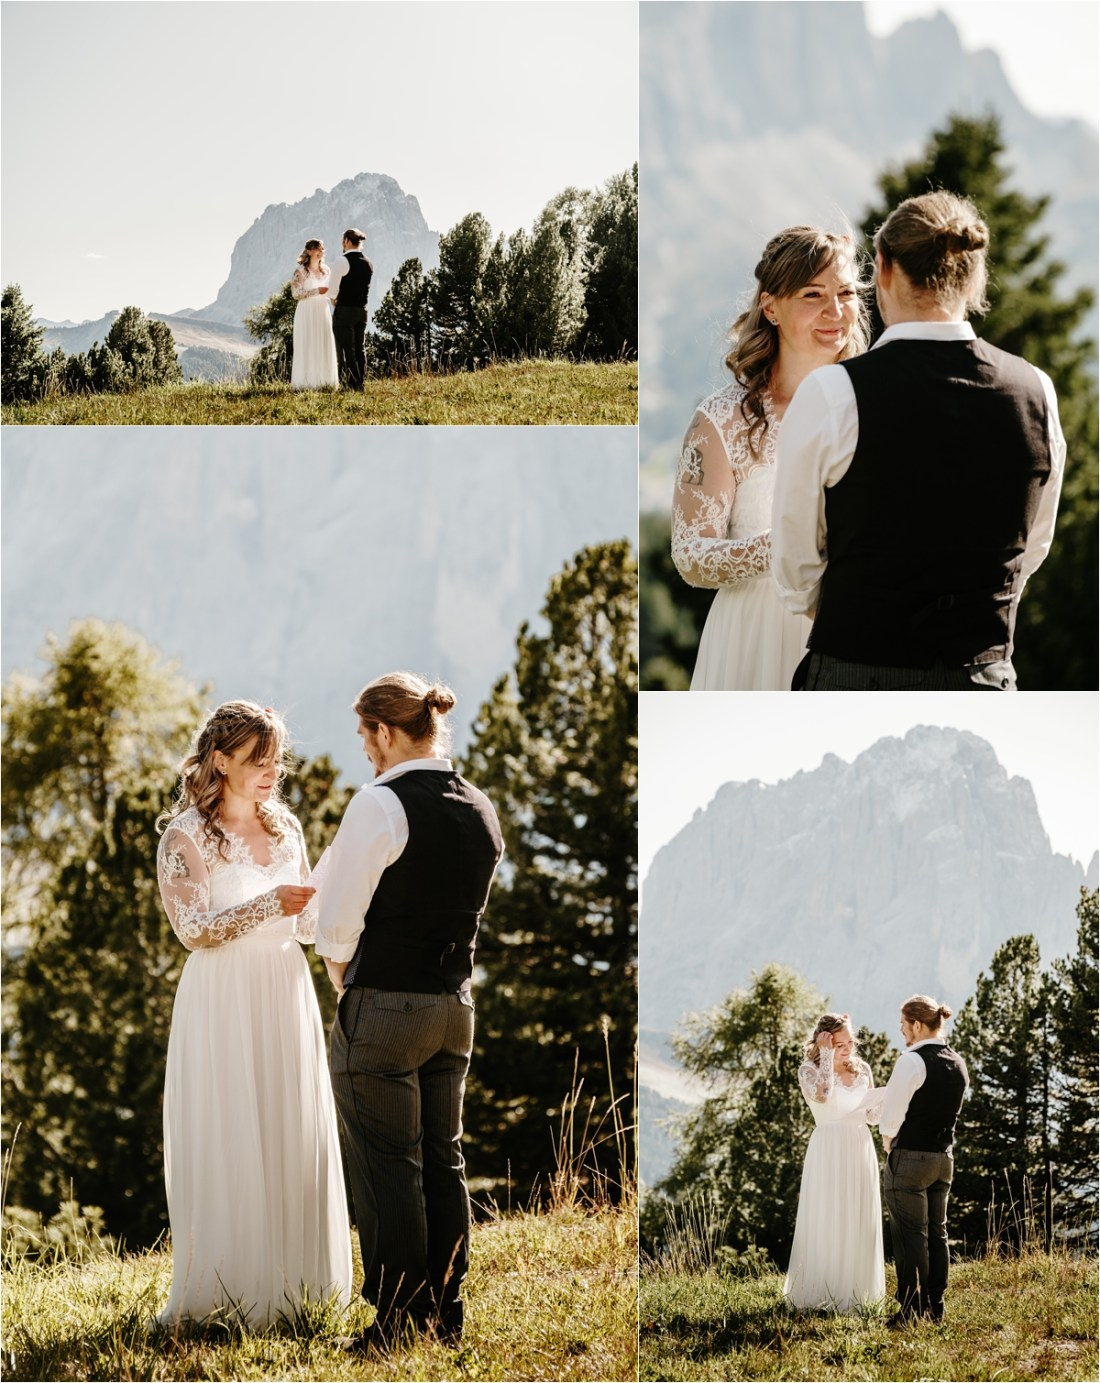 Alpe di Siusi elopement in the Dolomites. Photos by Wild Connections Photography